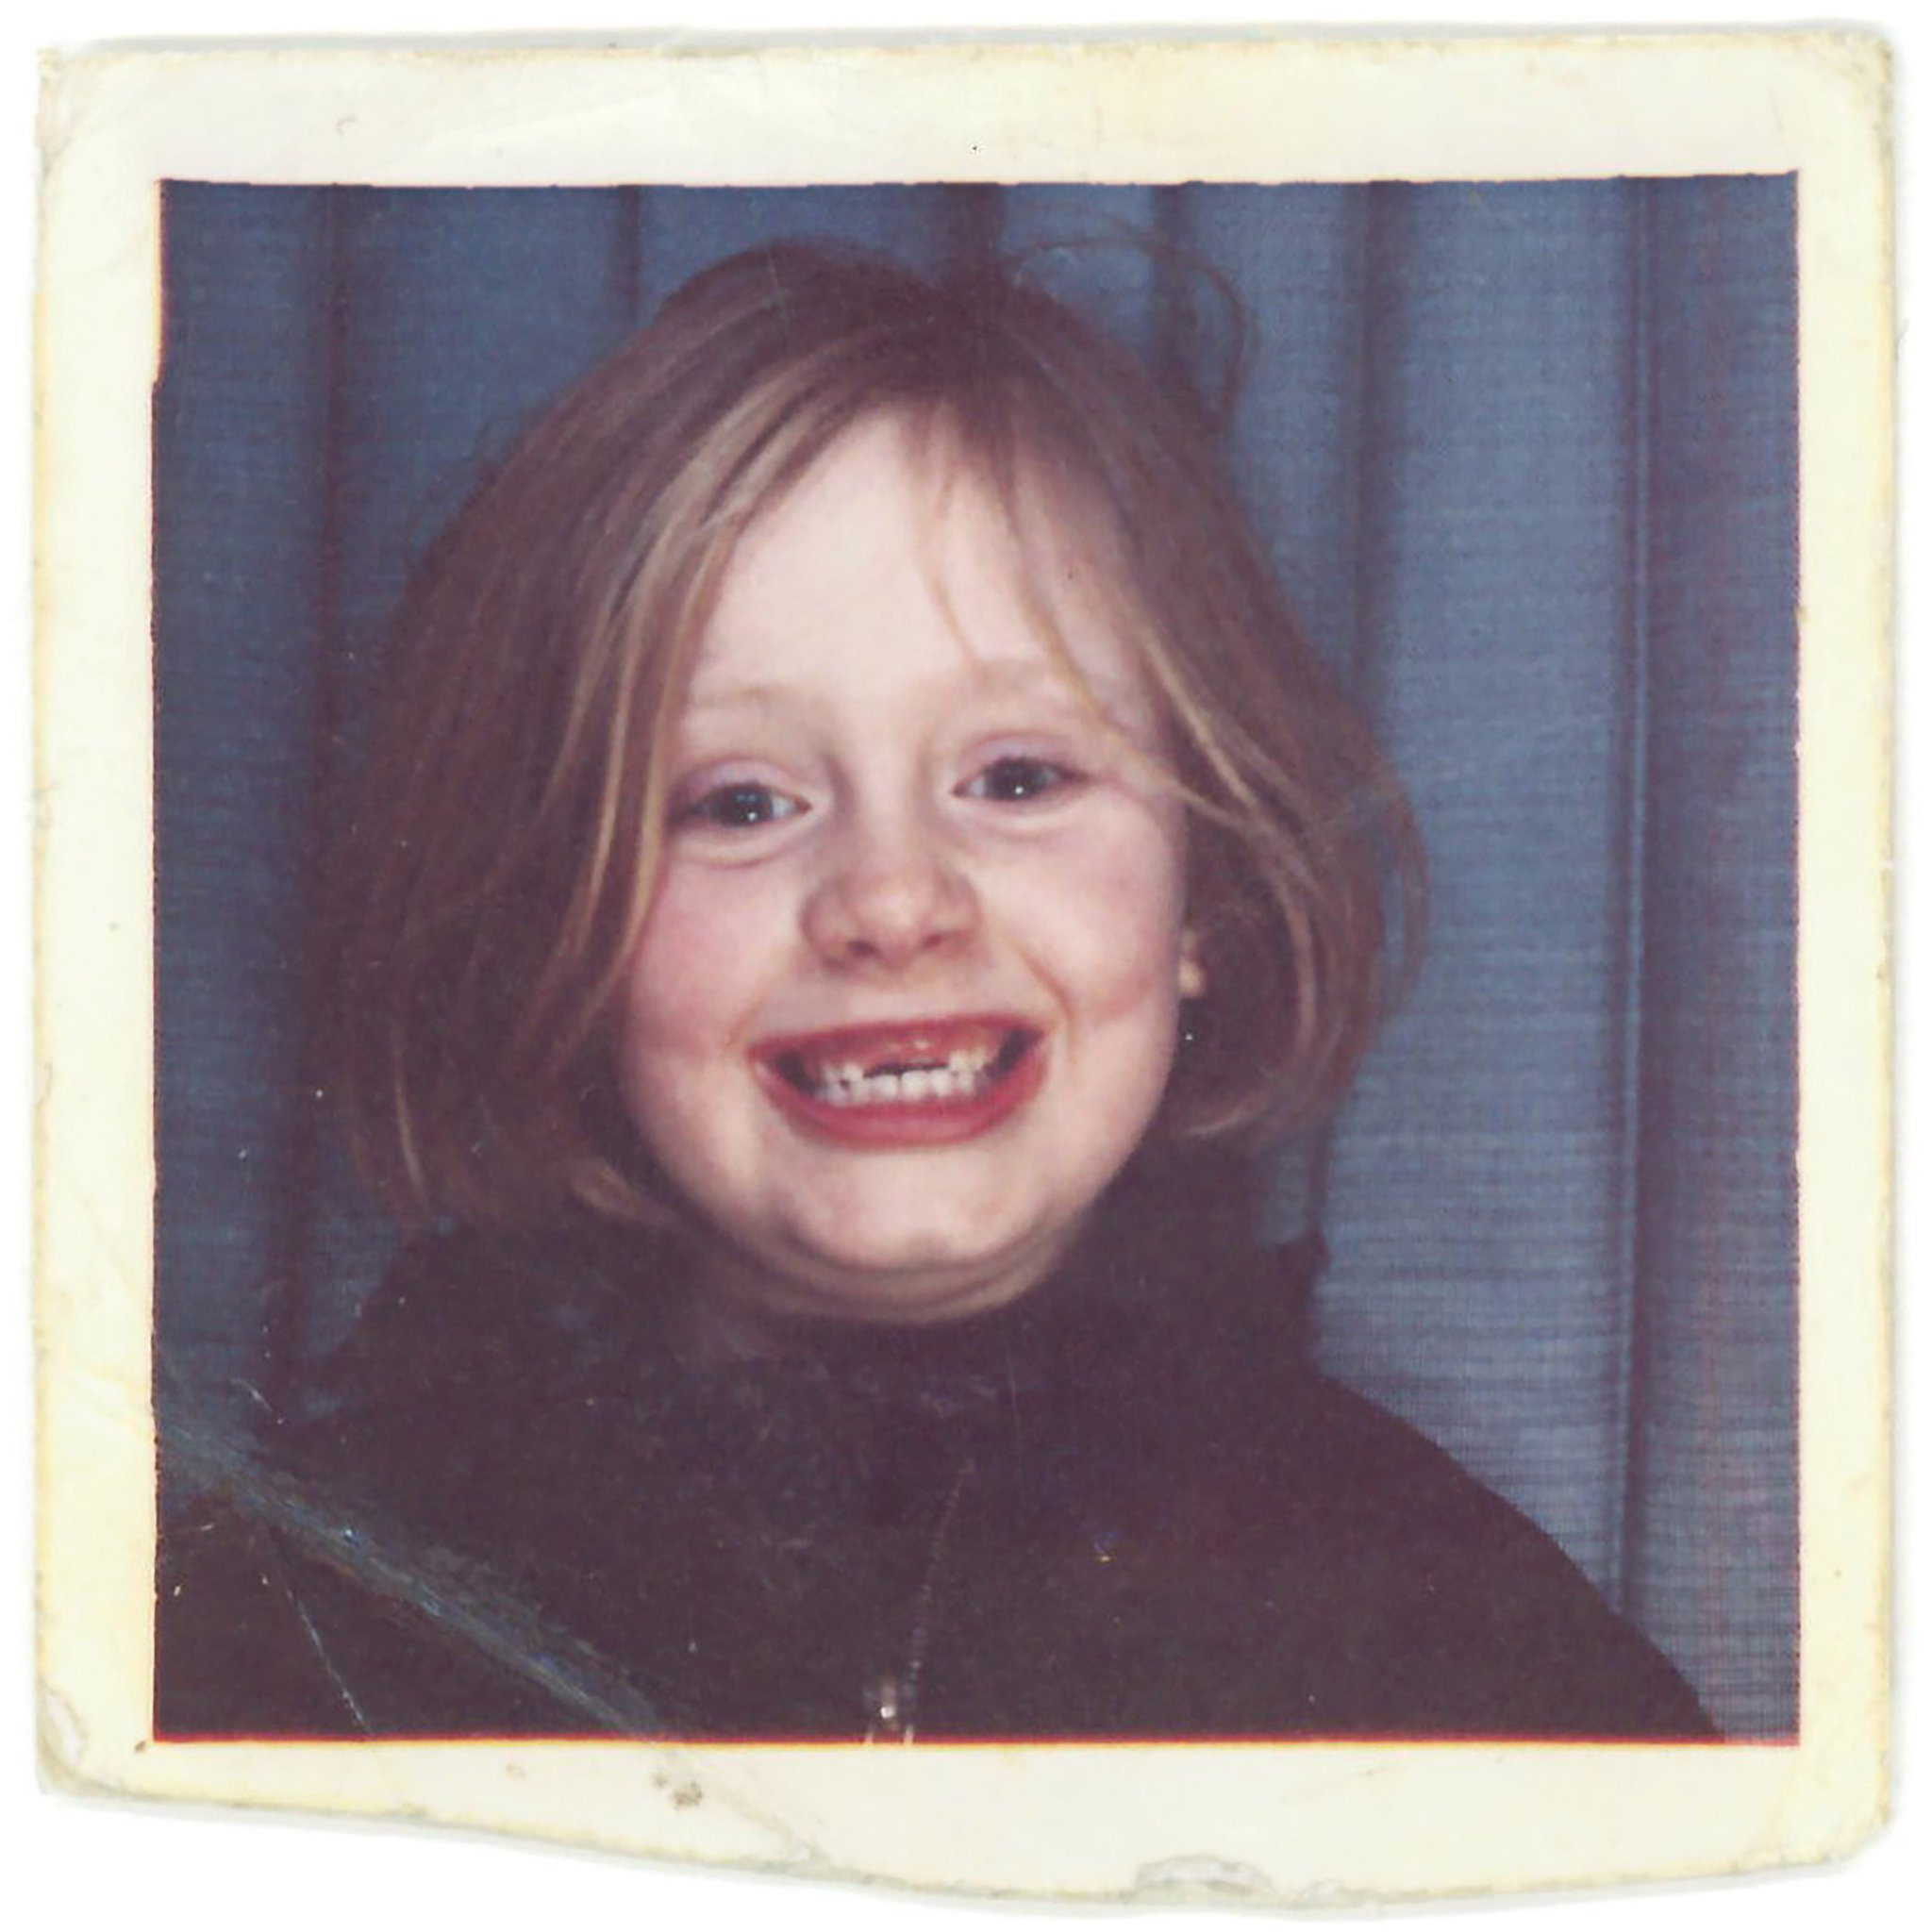 Adele's Childhood Photo Is Excellent Marketing For Her New Single | Cuba Si